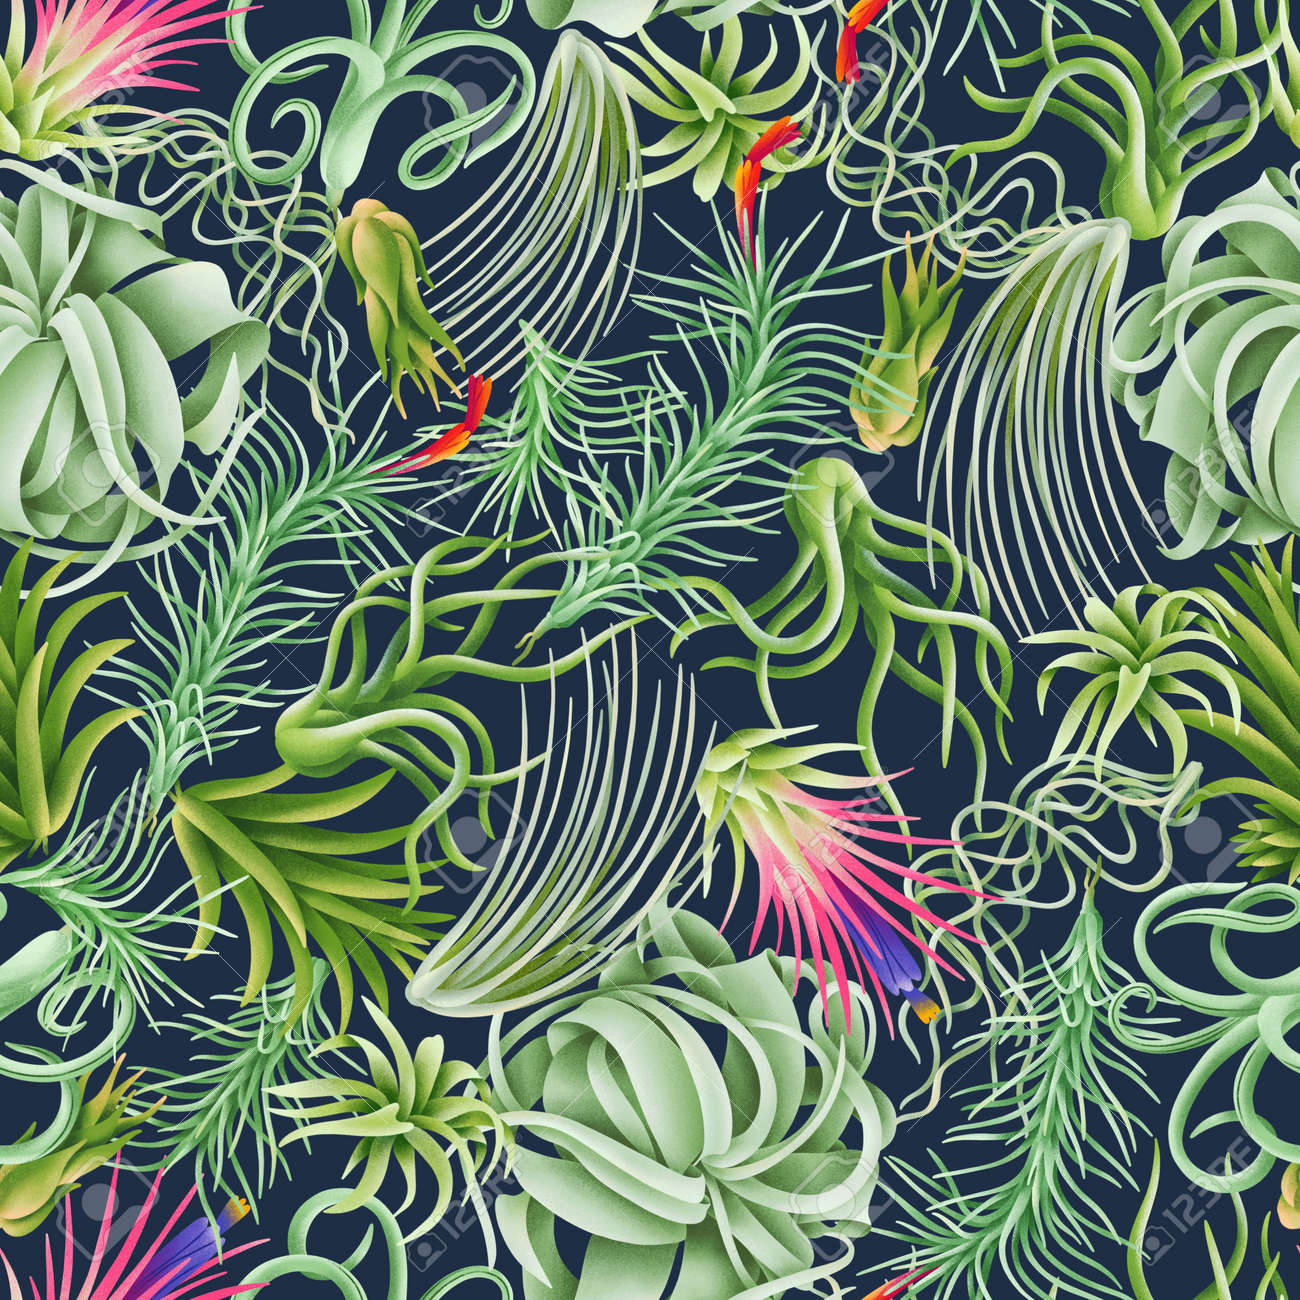 Tillandsia forest, exotic beautiful air plants seamless pattern illustration. Rich and modern background texture - 170268199